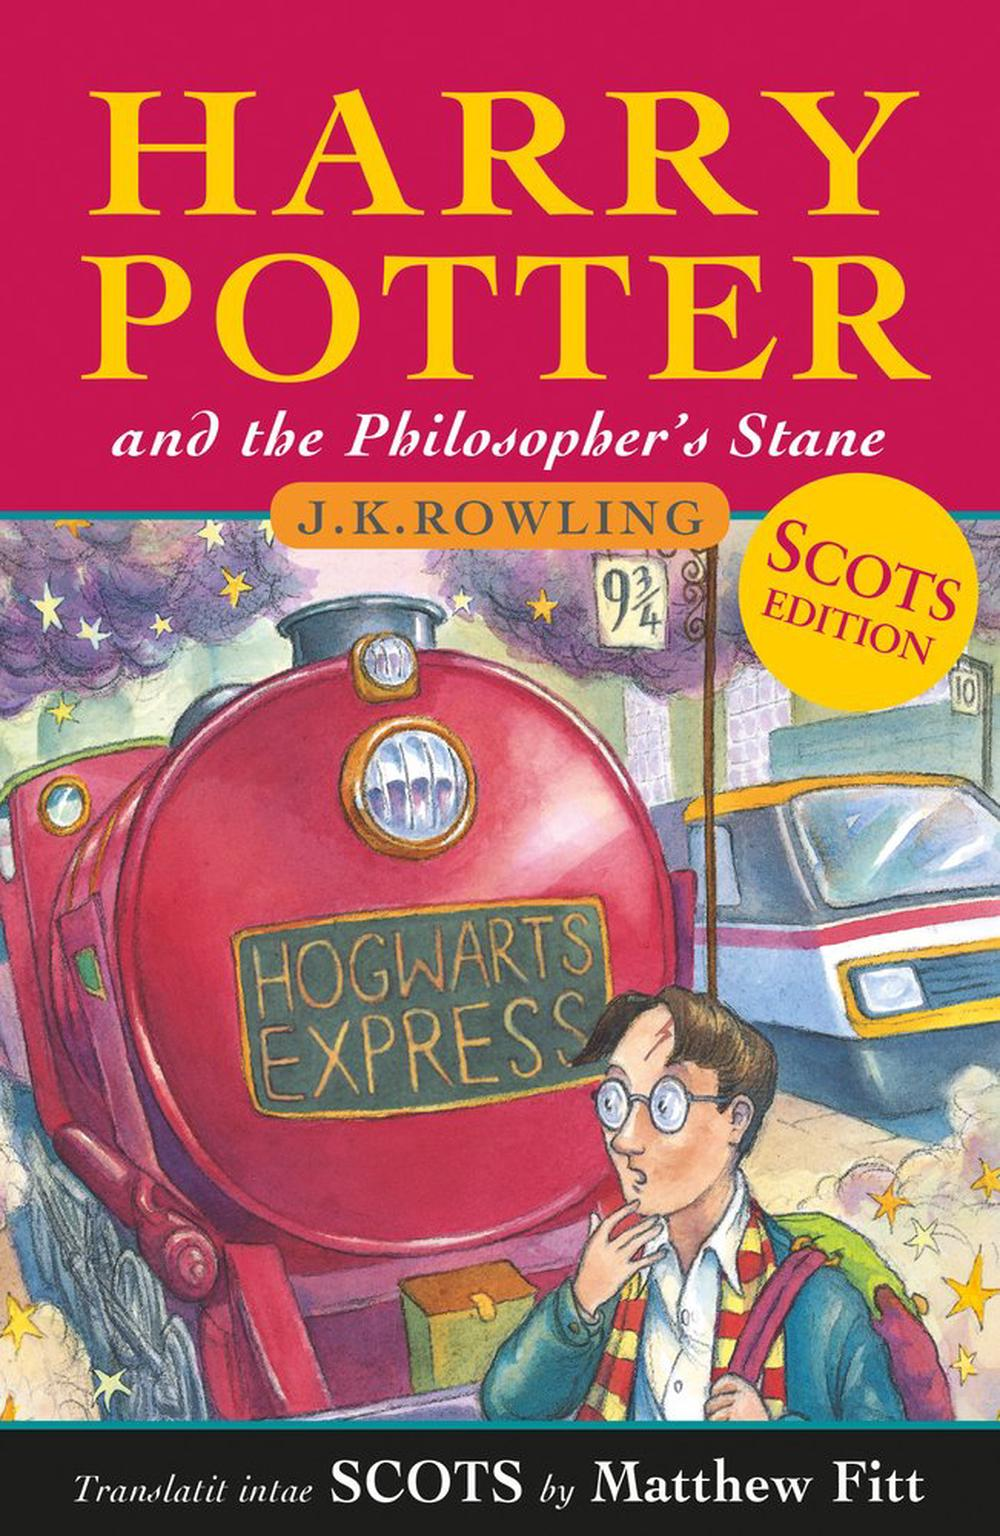 Harry Potter and the Philosopher's Stane: Harry Potter and the Philosopher's Stone in Scots (Scots Language Edition)